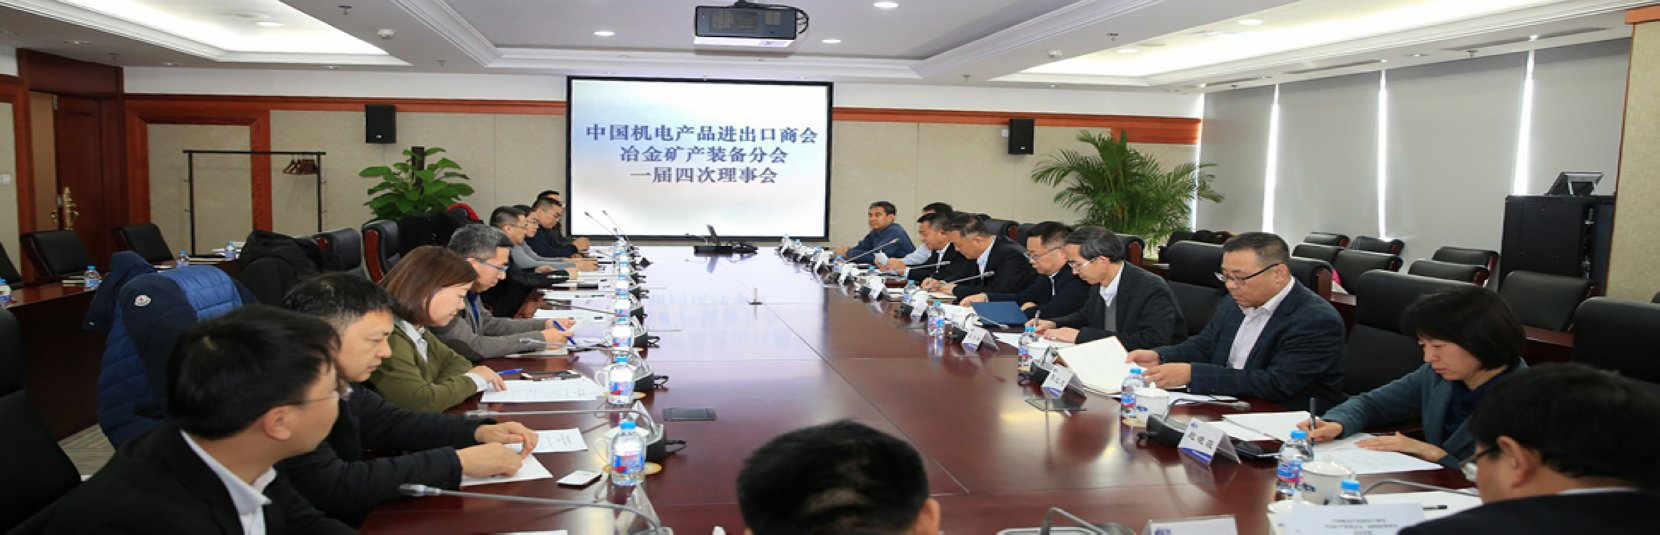 The 4th Session of the 1st Metallurgical & Mining Equipment Branch Council Meeting Held in Beijing